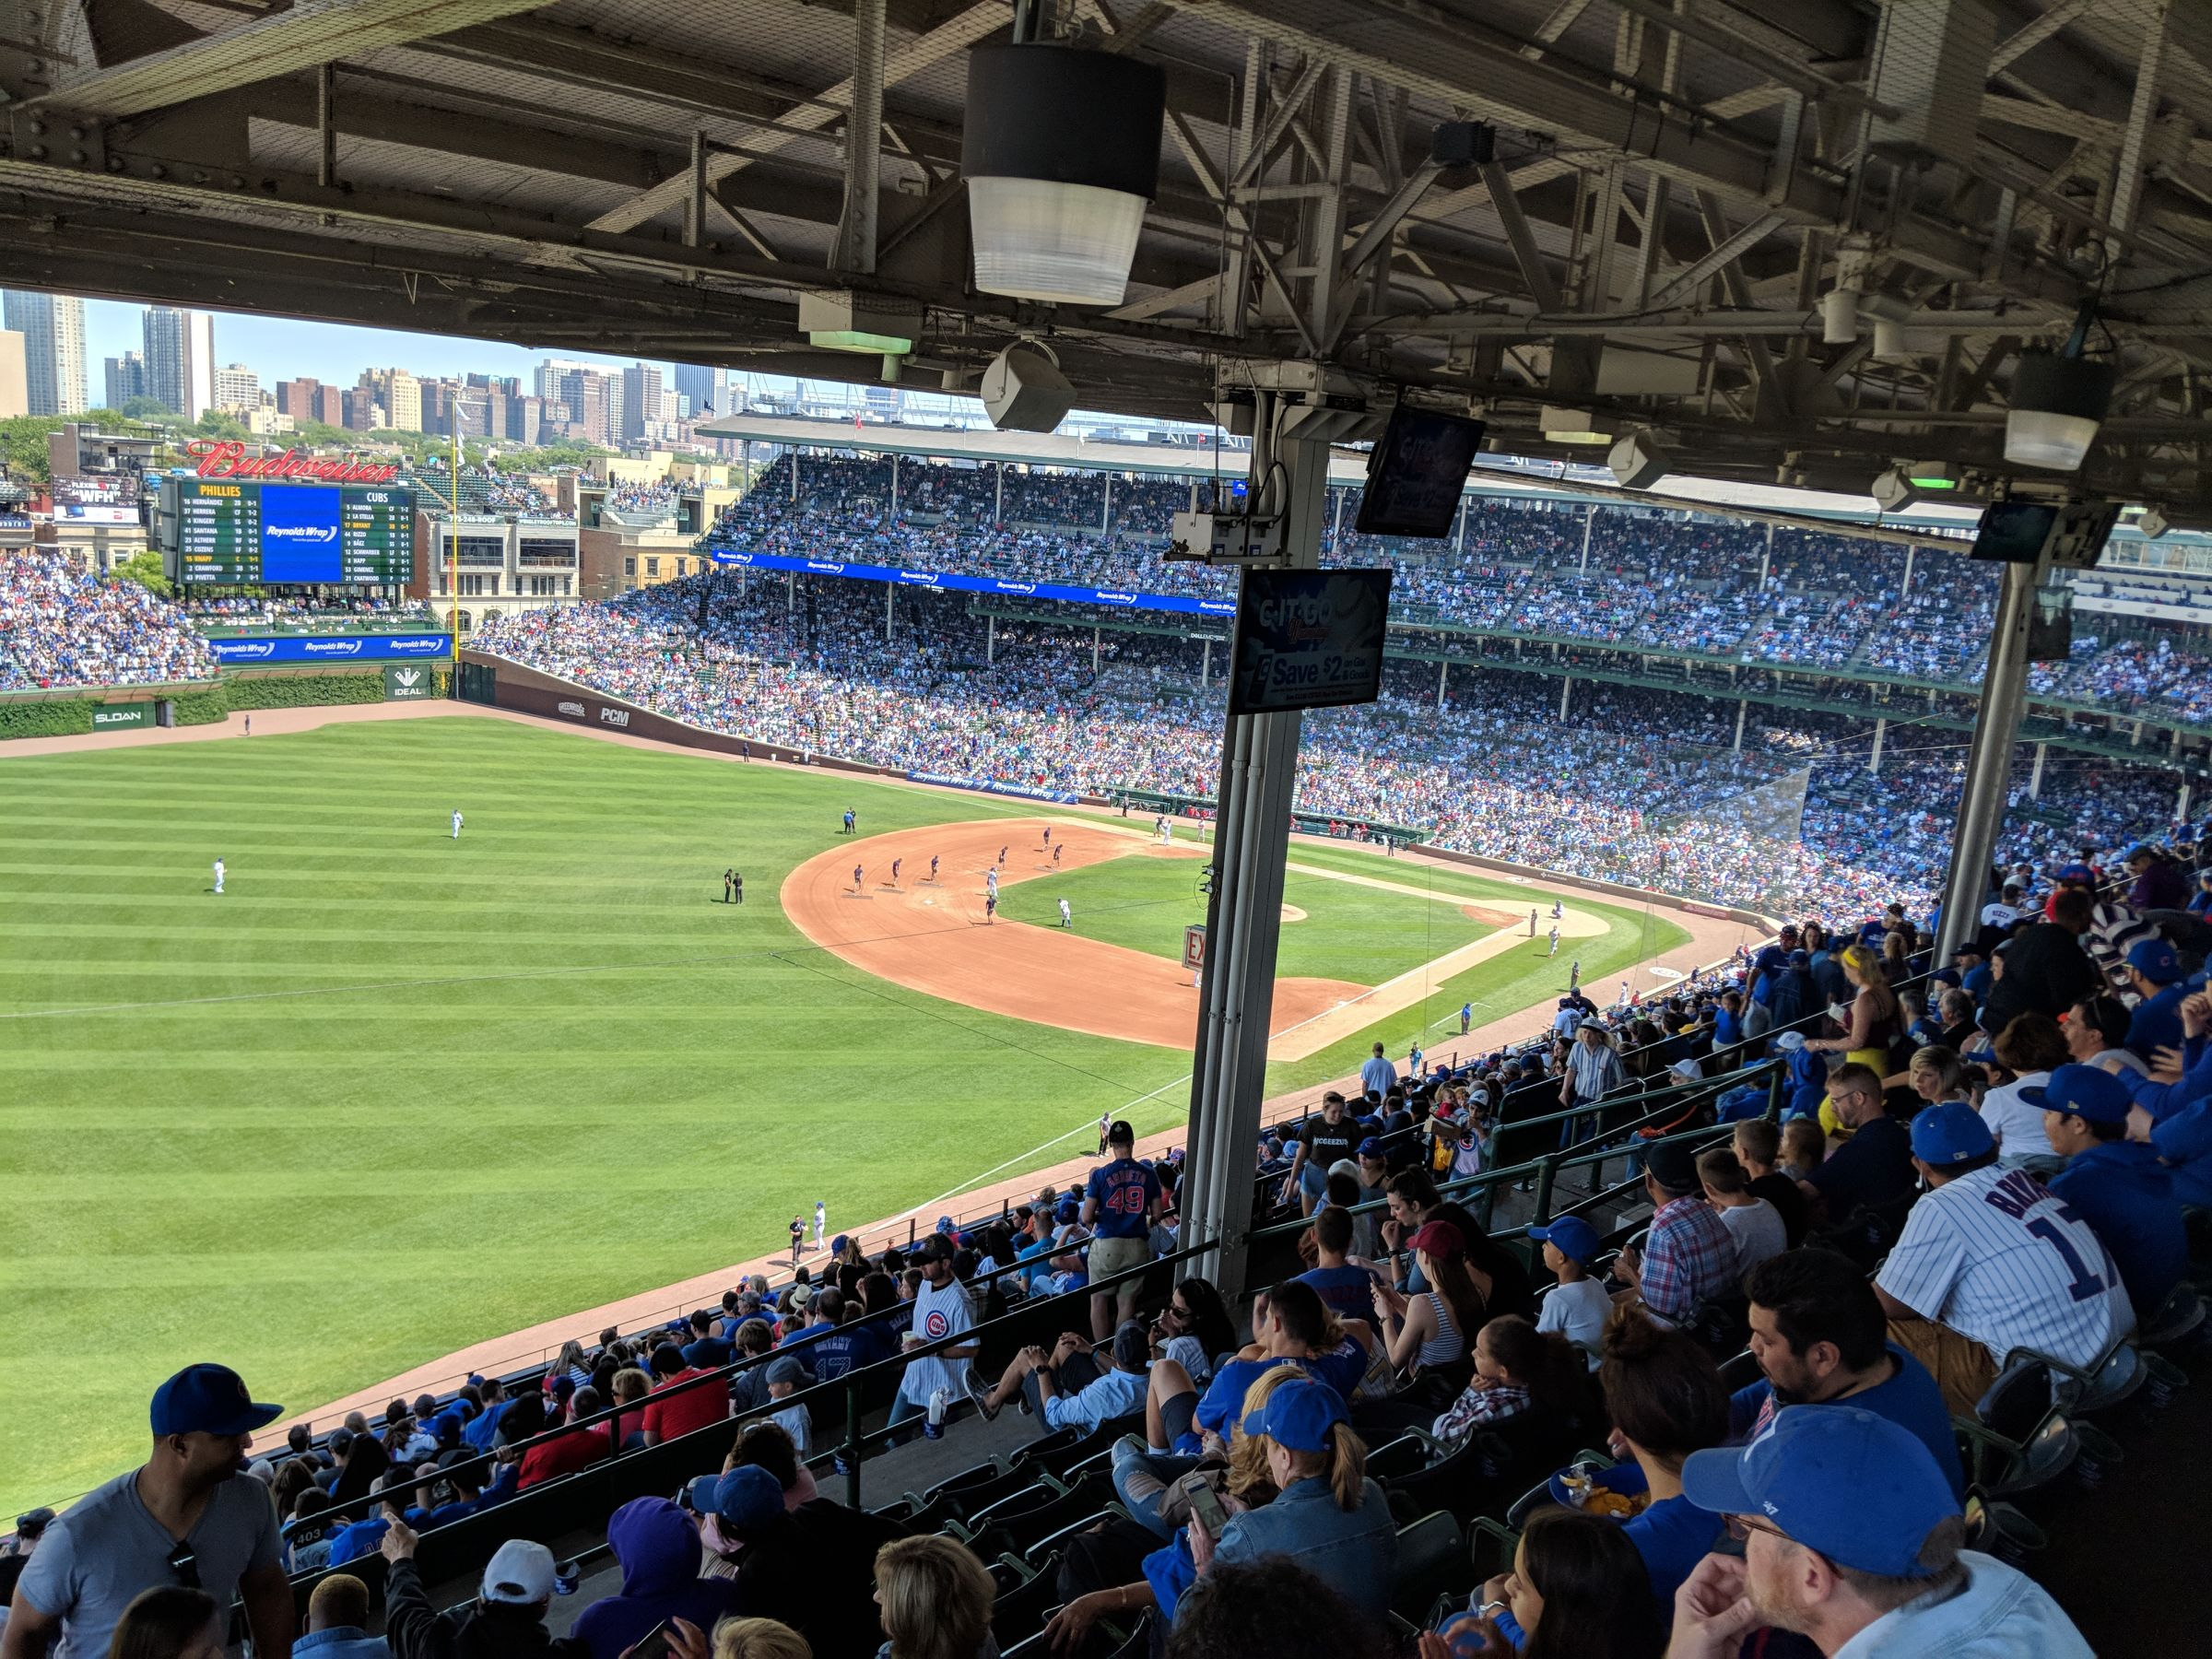 Seat View for Wrigley Field Section 403, Row 8, Seat 102